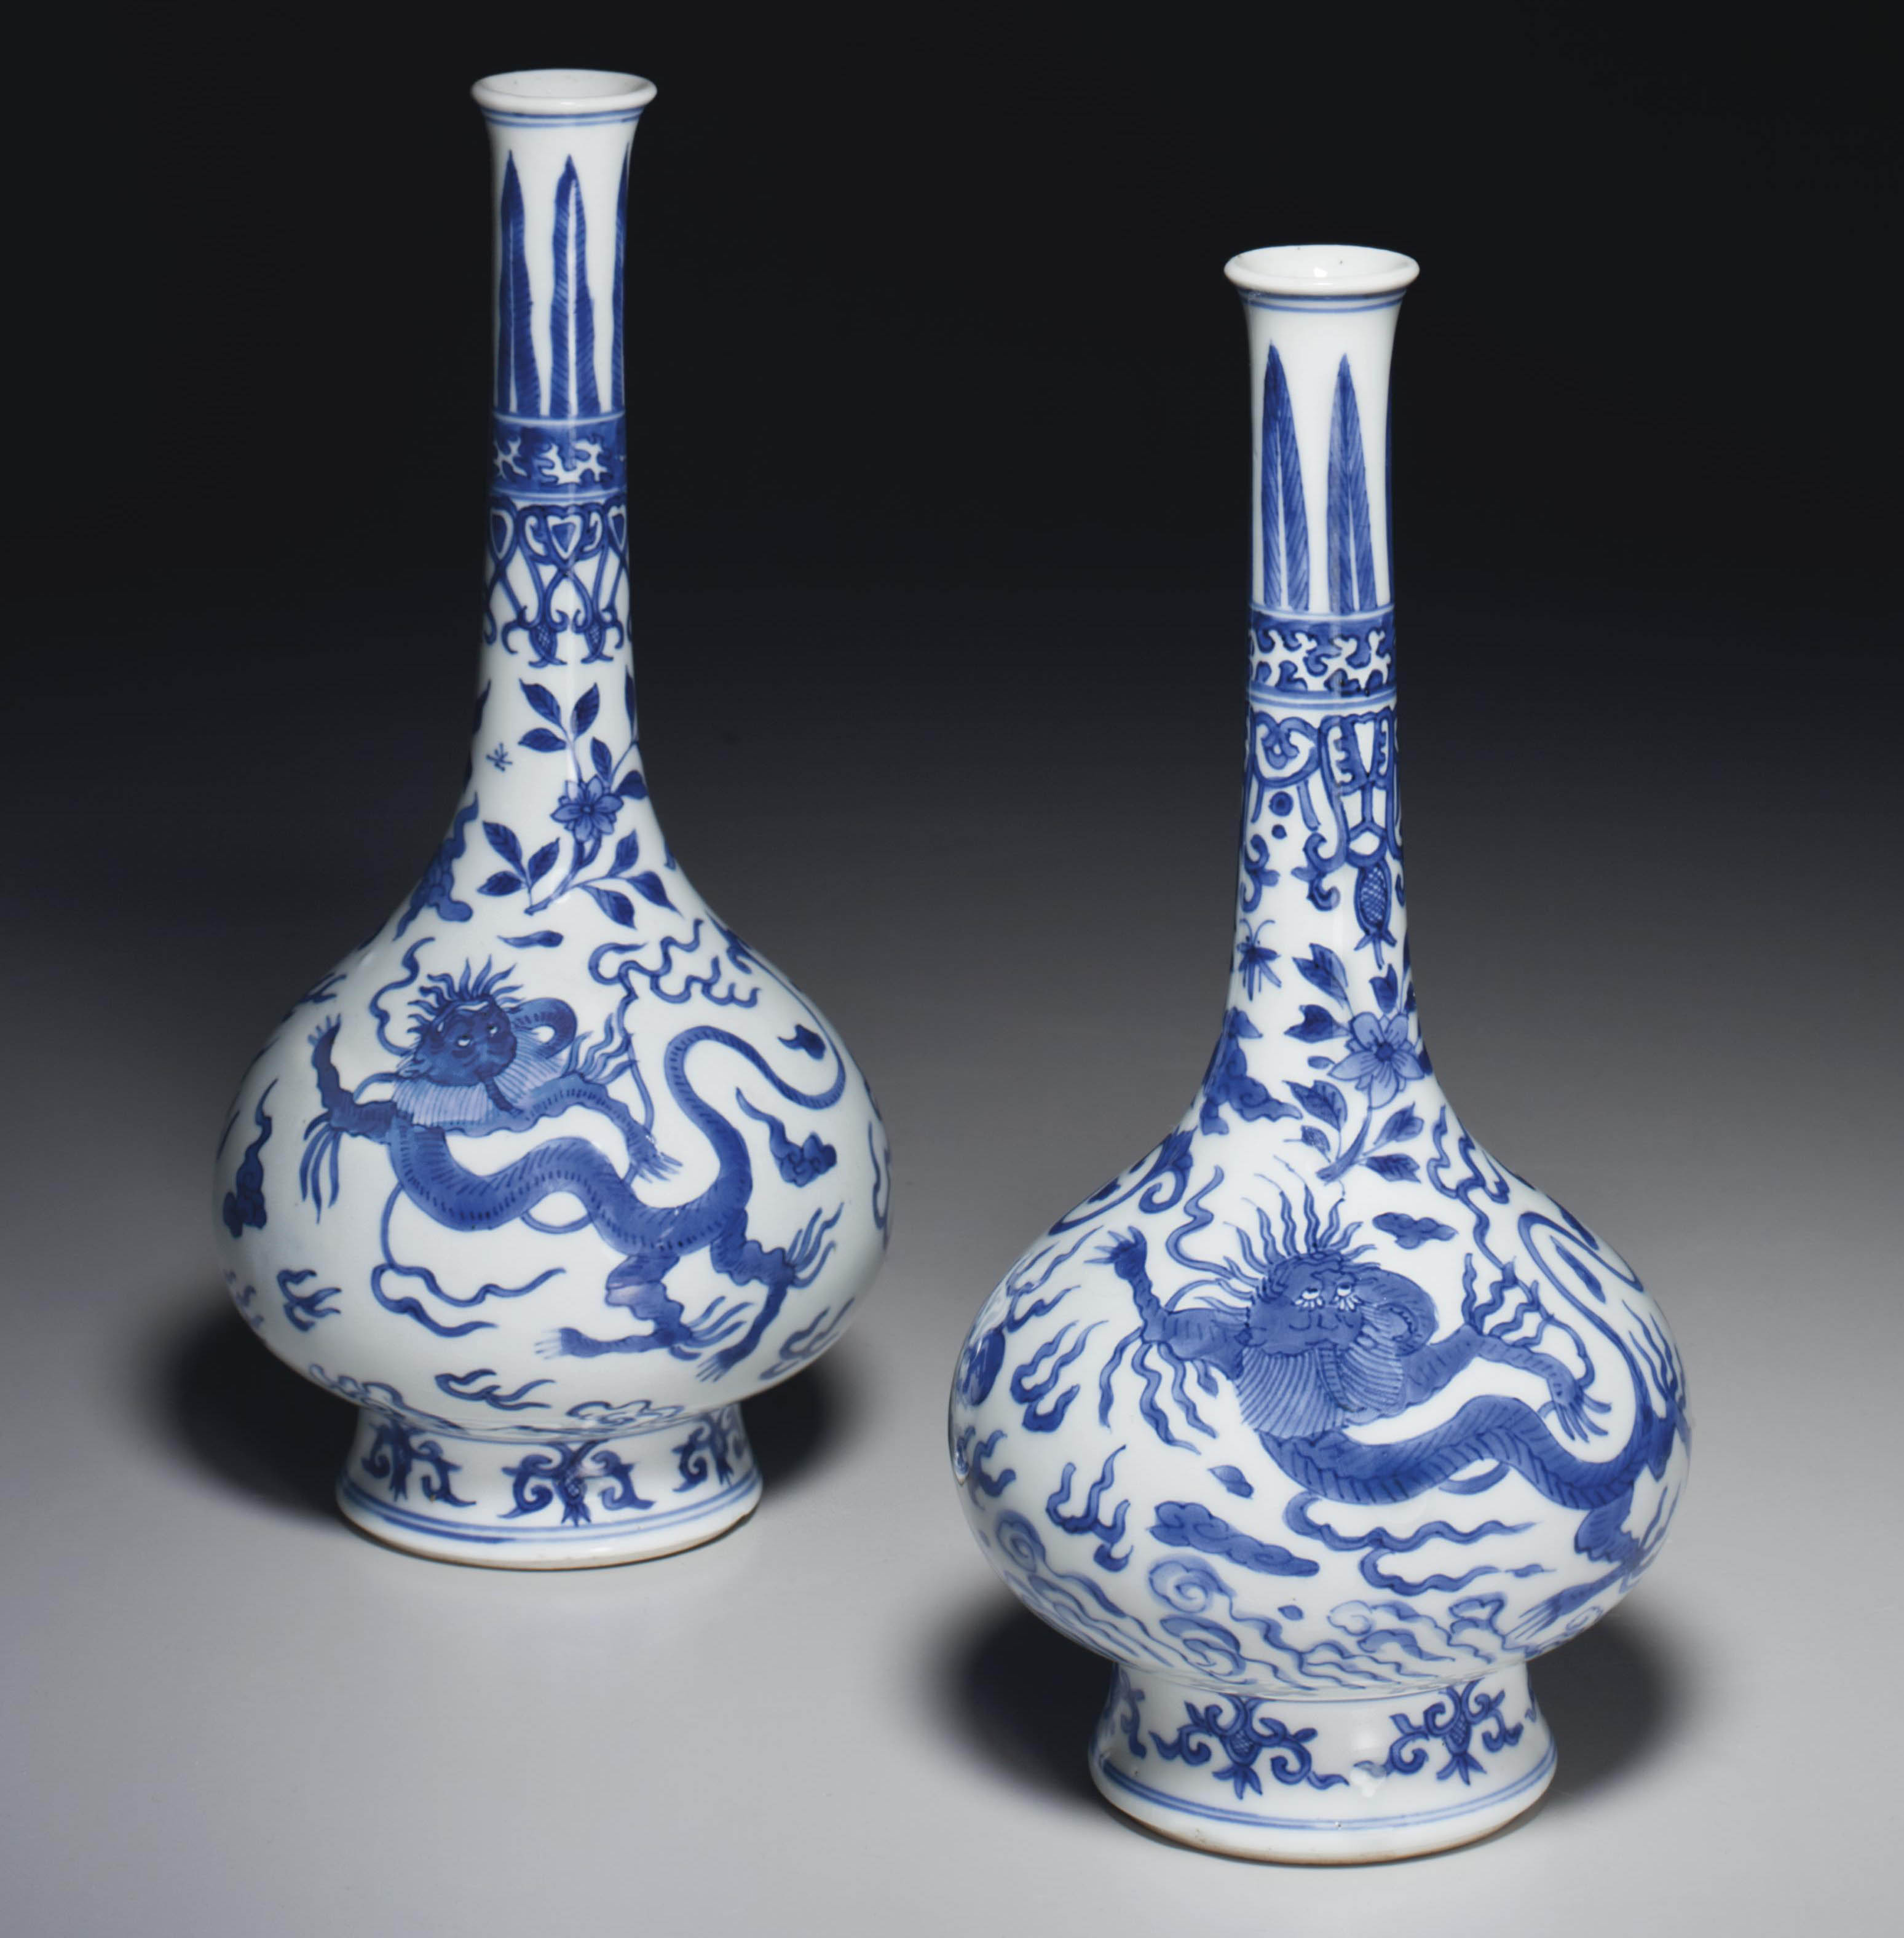 TWO BLUE AND WHITE BOTTLE VASE